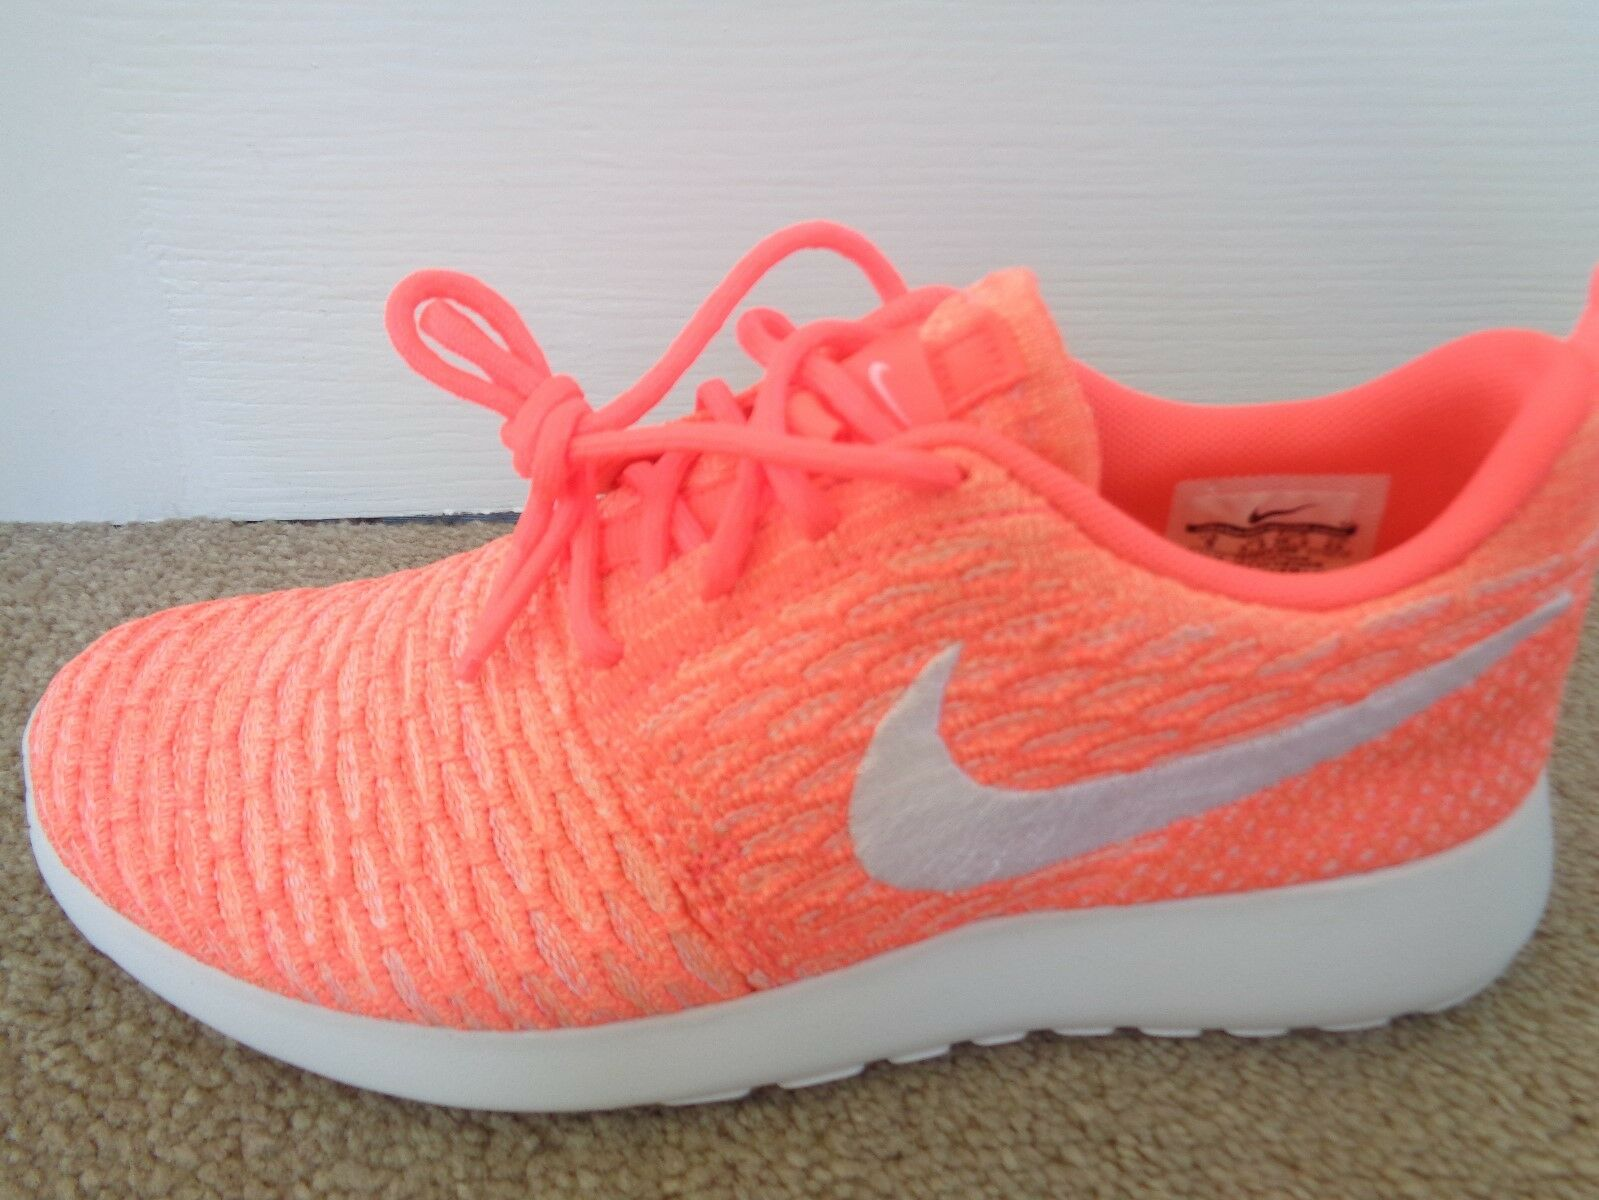 Nike Roshe one Flyknit wmns trainers shoes 704927 36.5 800 uk 3.5 eu 36.5 704927 us 6 NEW f9b353